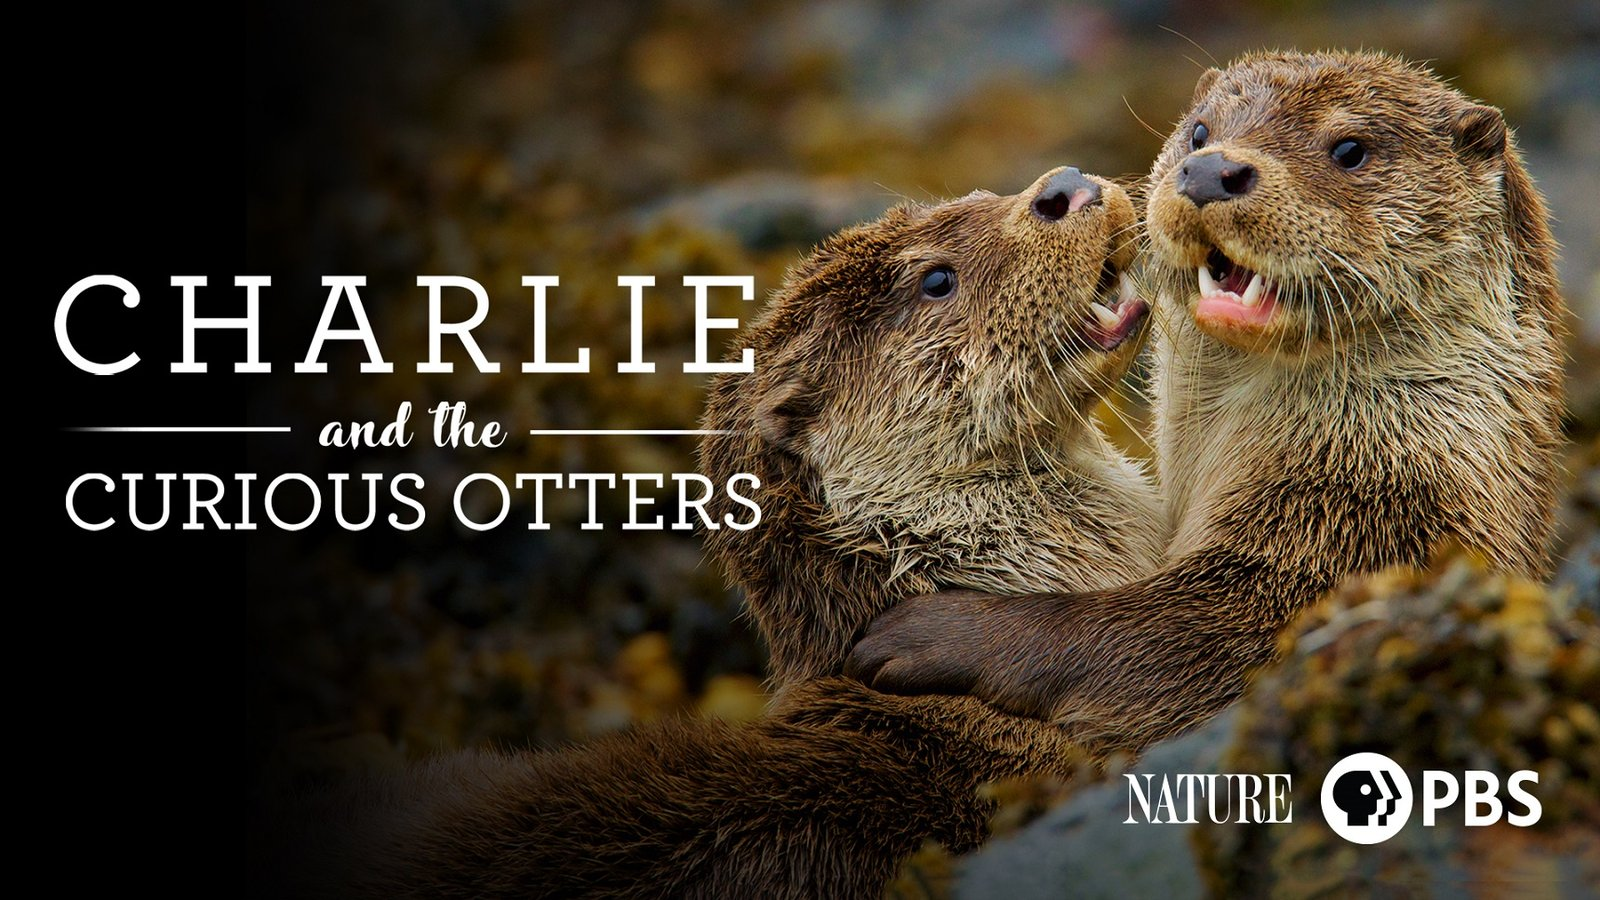 Nature: Charlie and the Curious Otters